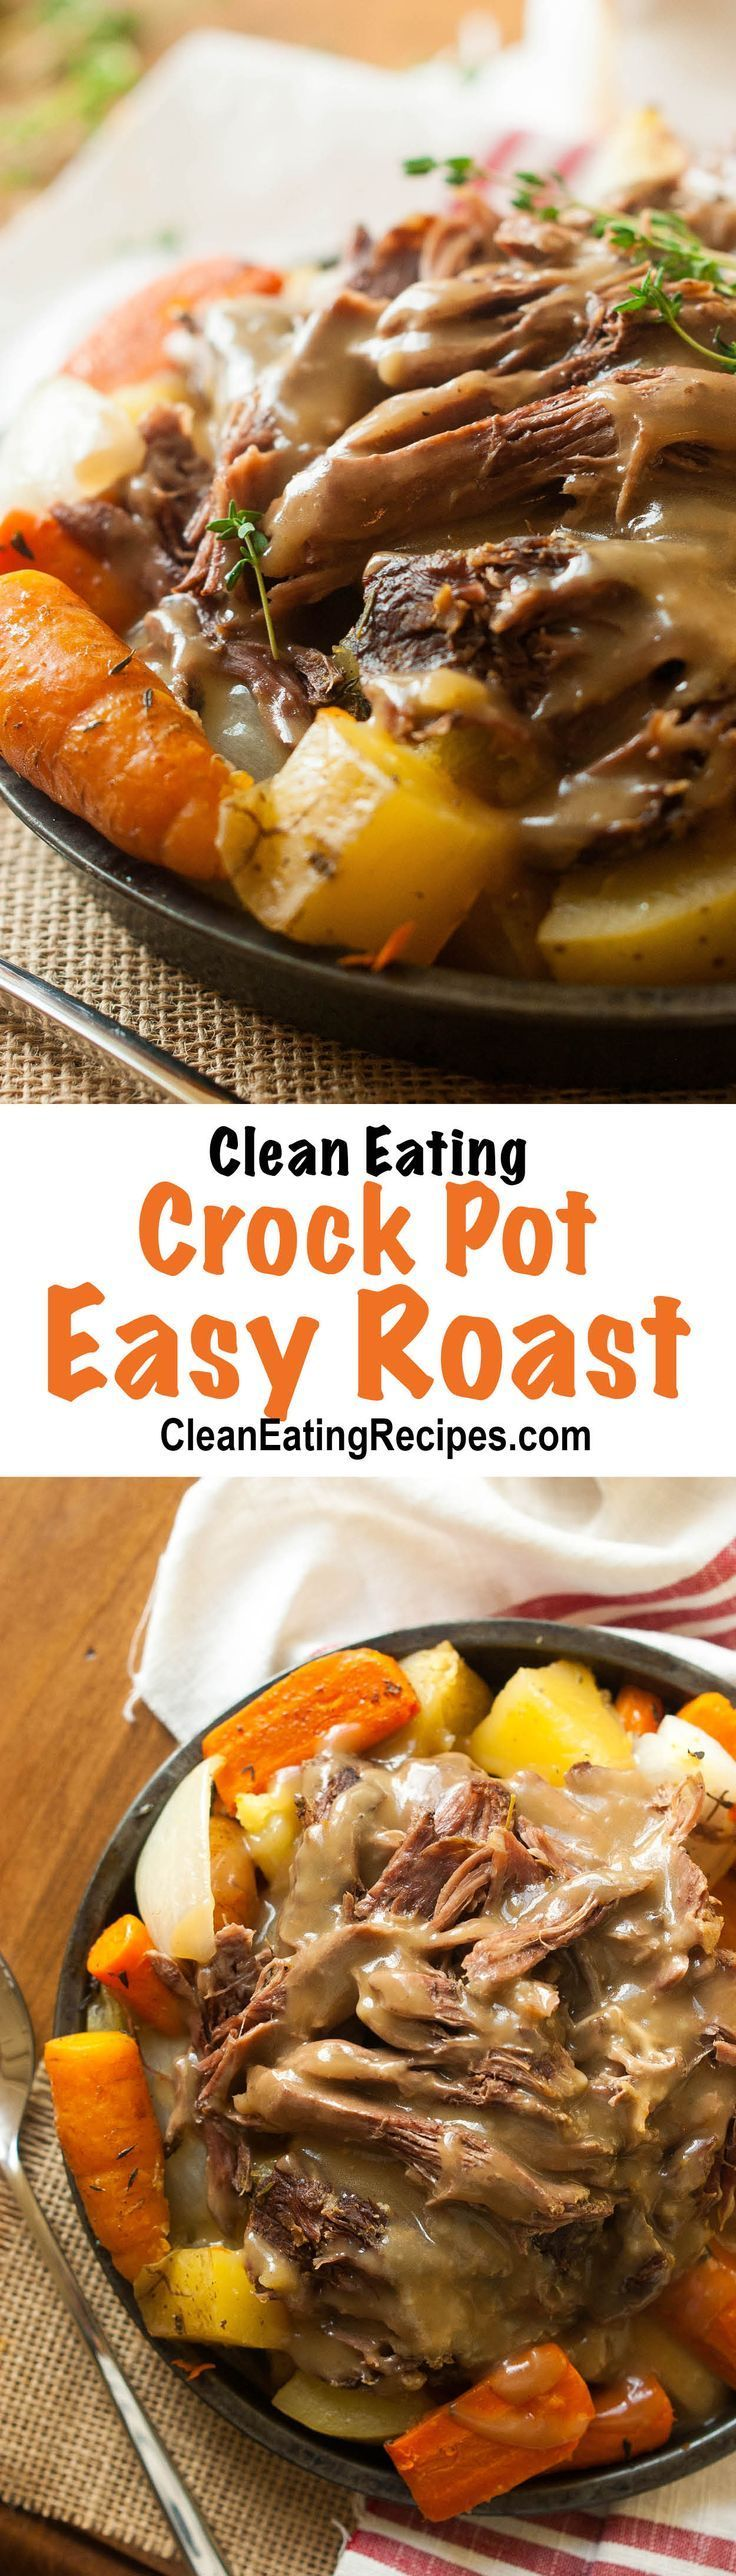 This crock pot roast is so easy and turned out so good! I'm pinning this so I can make it all the time. (Healthy Recipes Crock Pot)